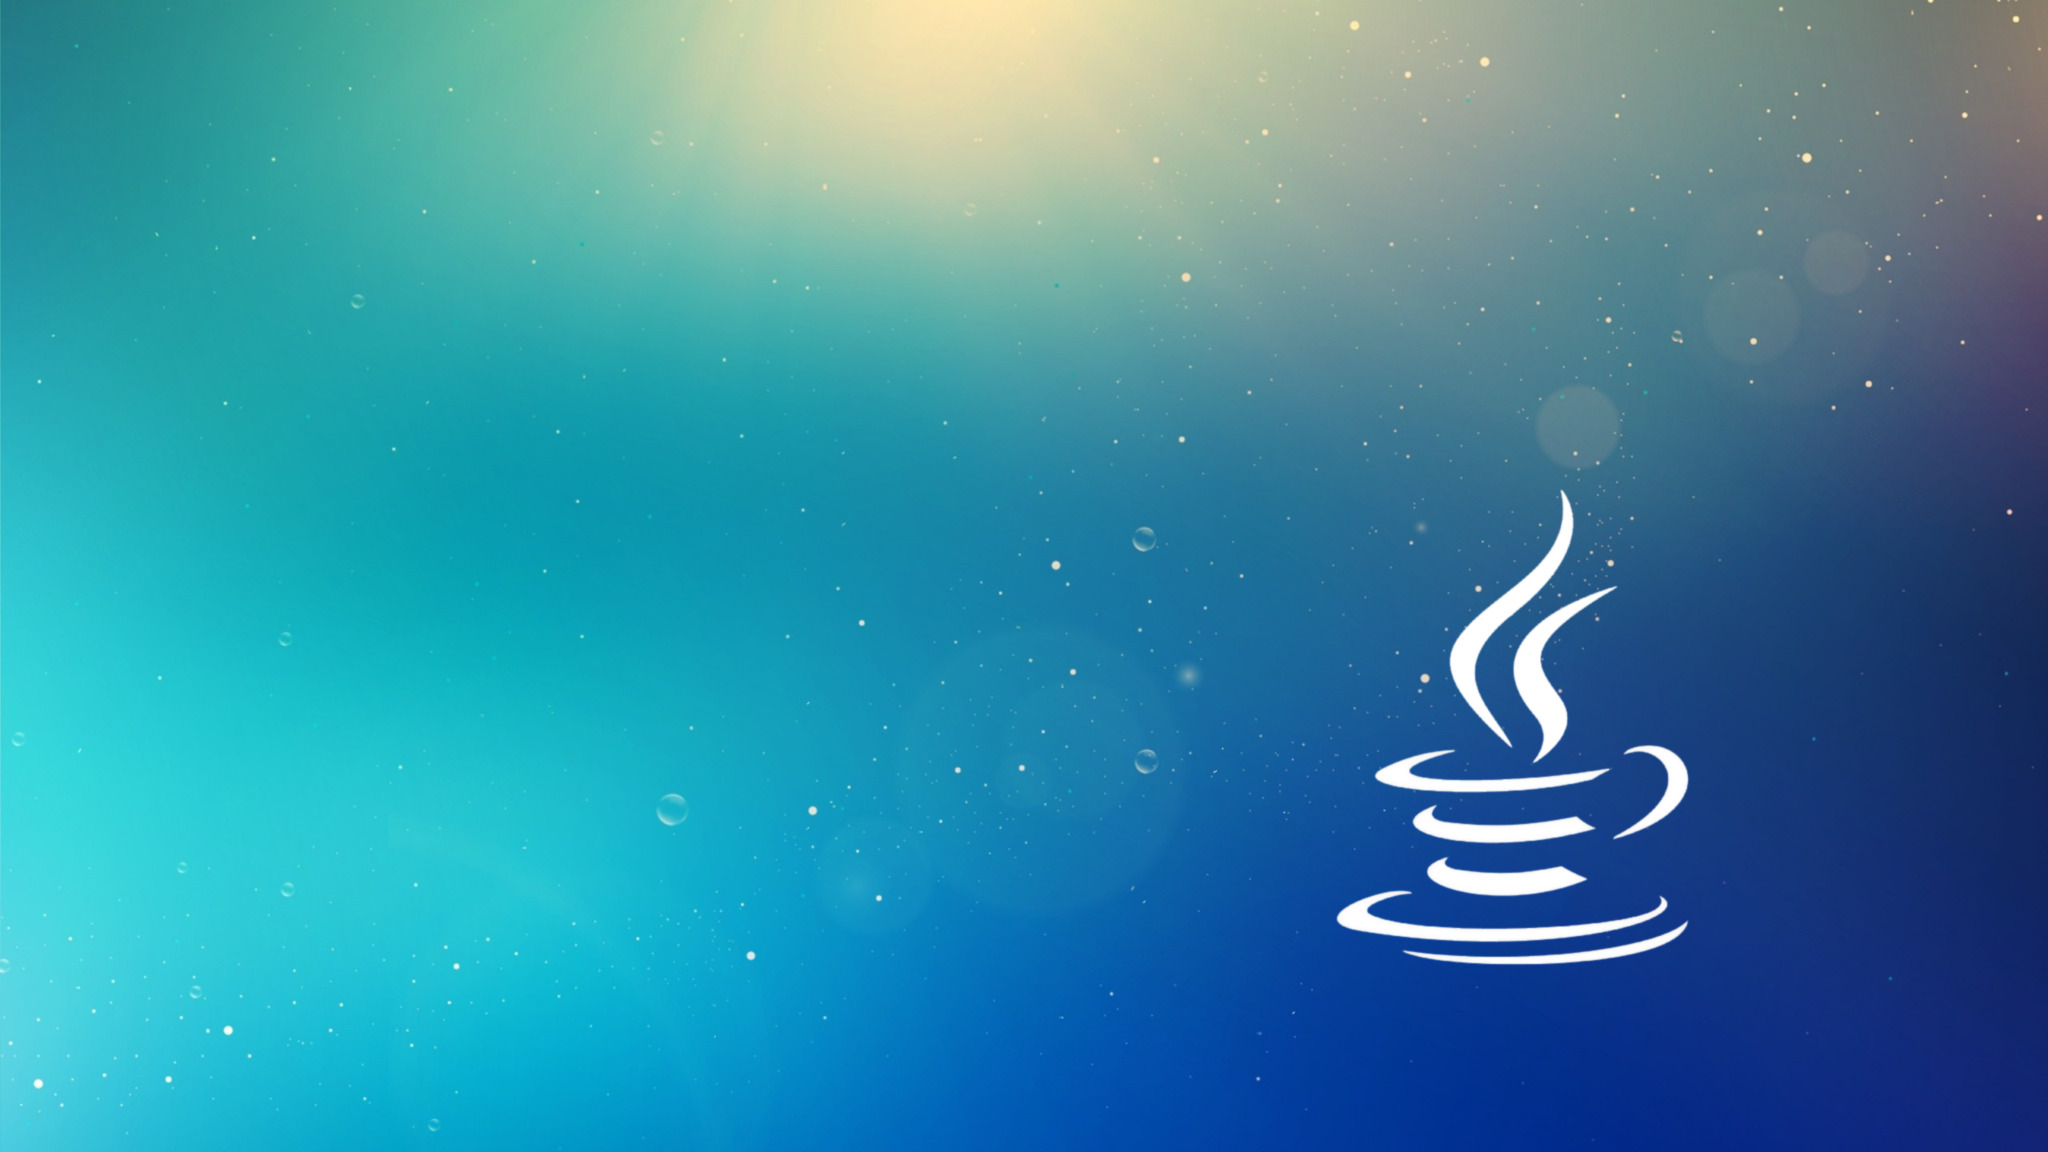 Wallpaper download java - Java Minimalism Wide Jpg